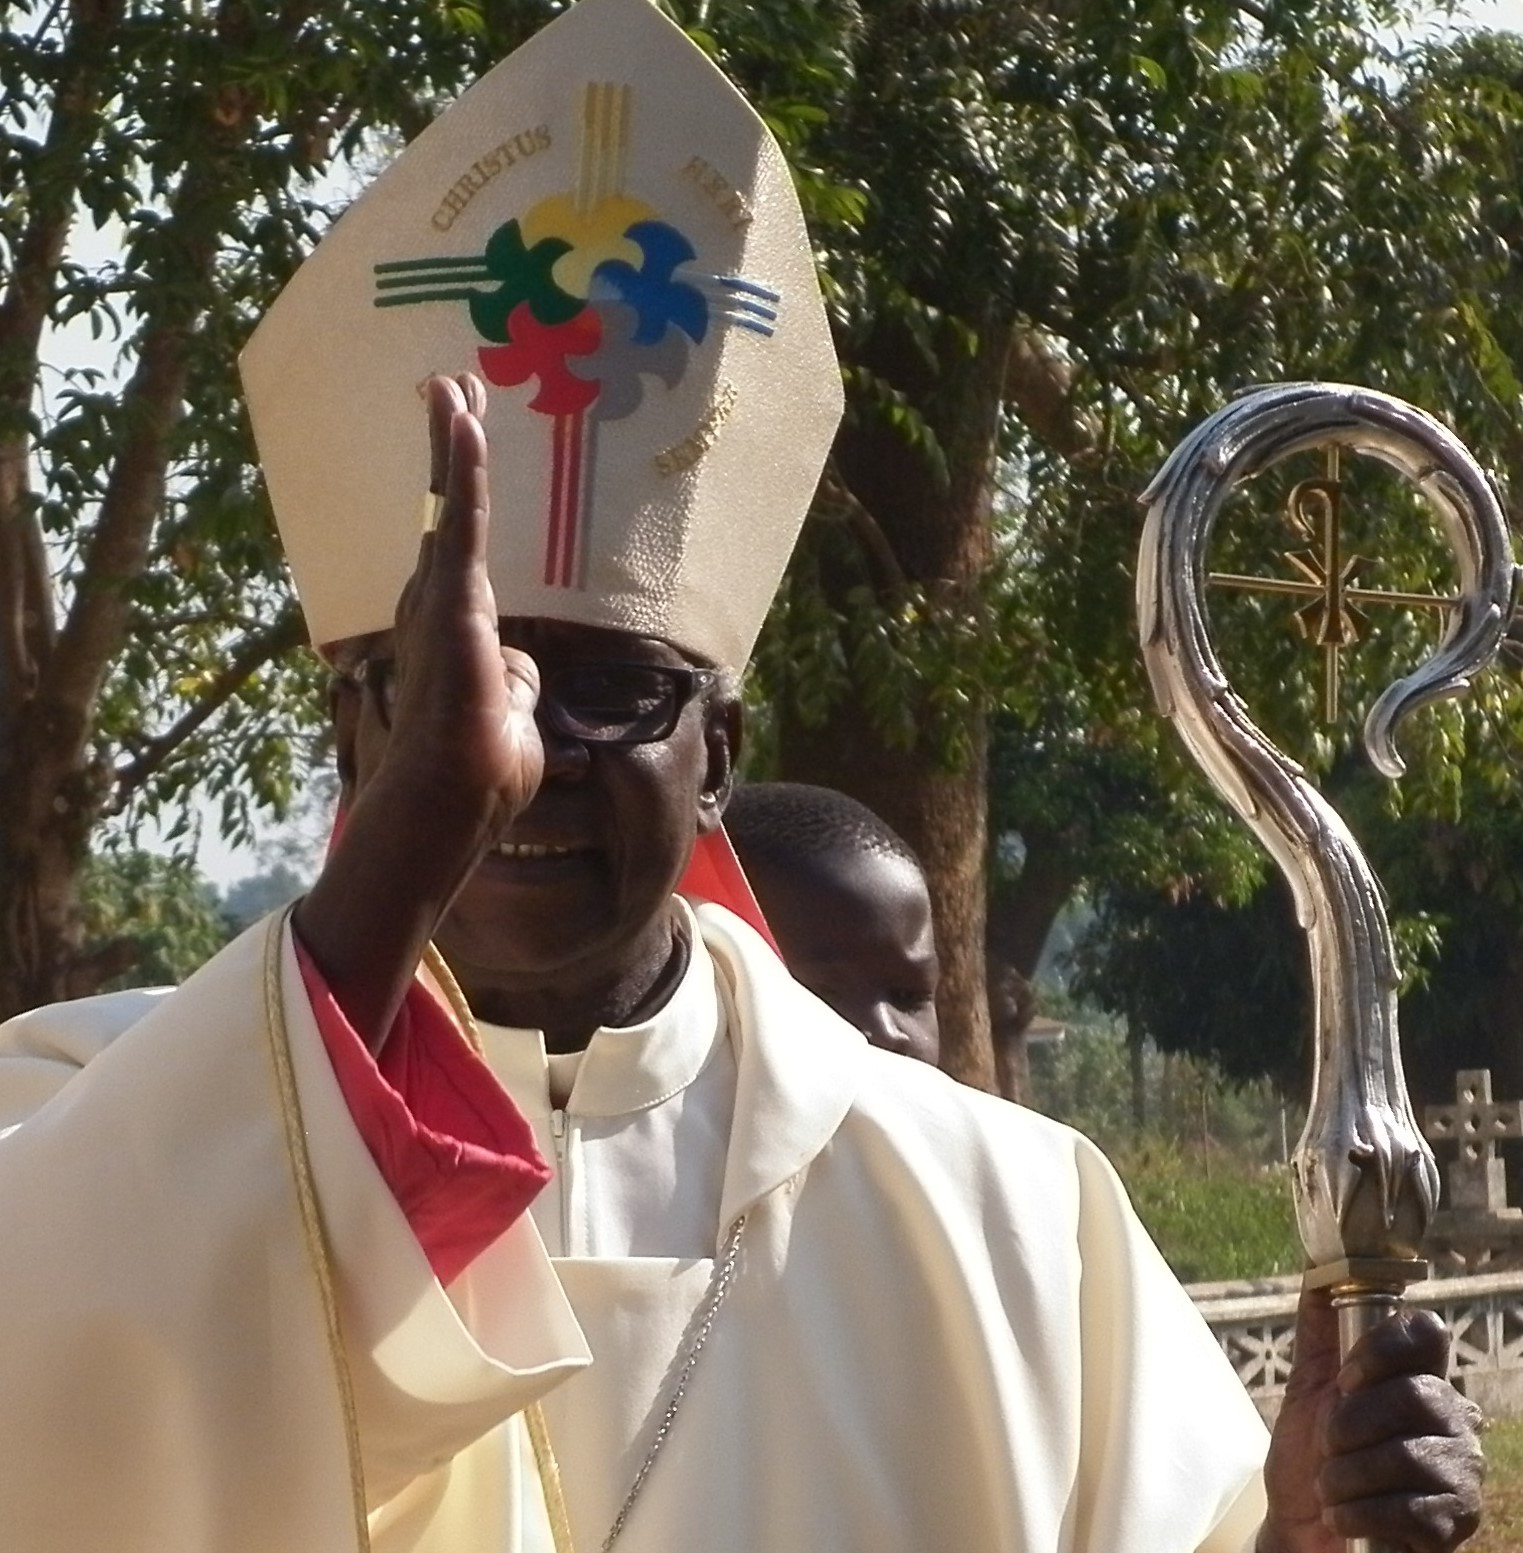 Bishop Erkolano Lodu Tombe in a mass procession on new year day sunday